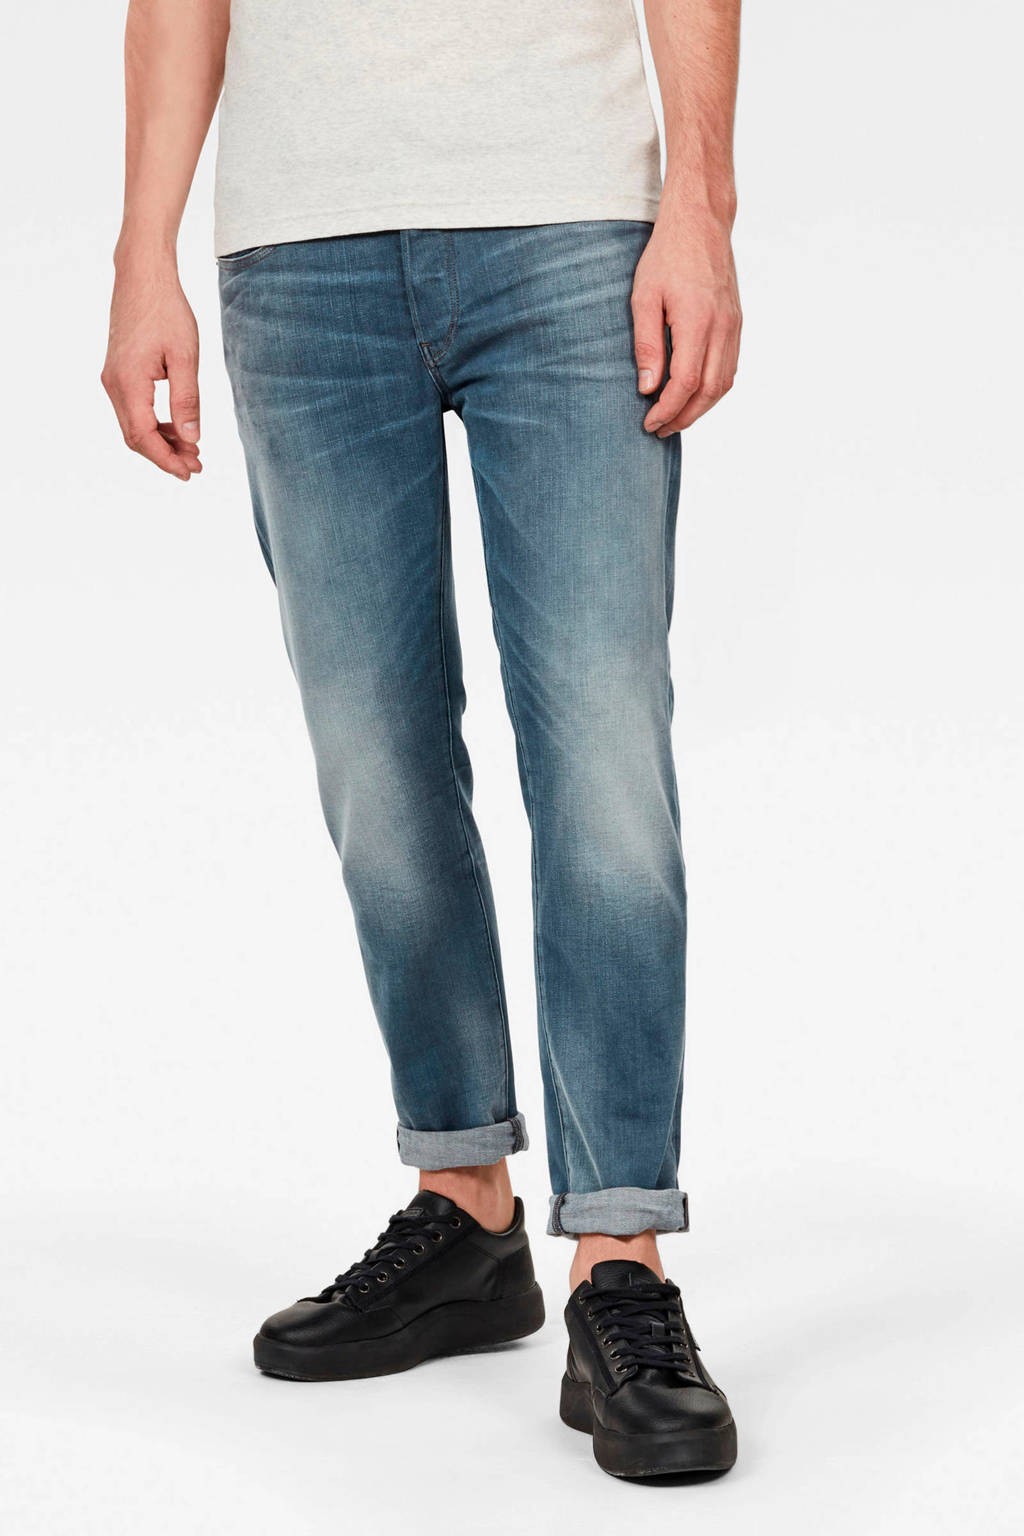 G-Star RAW slim fit jeans 3301 faded quartz, A805 faded quartz